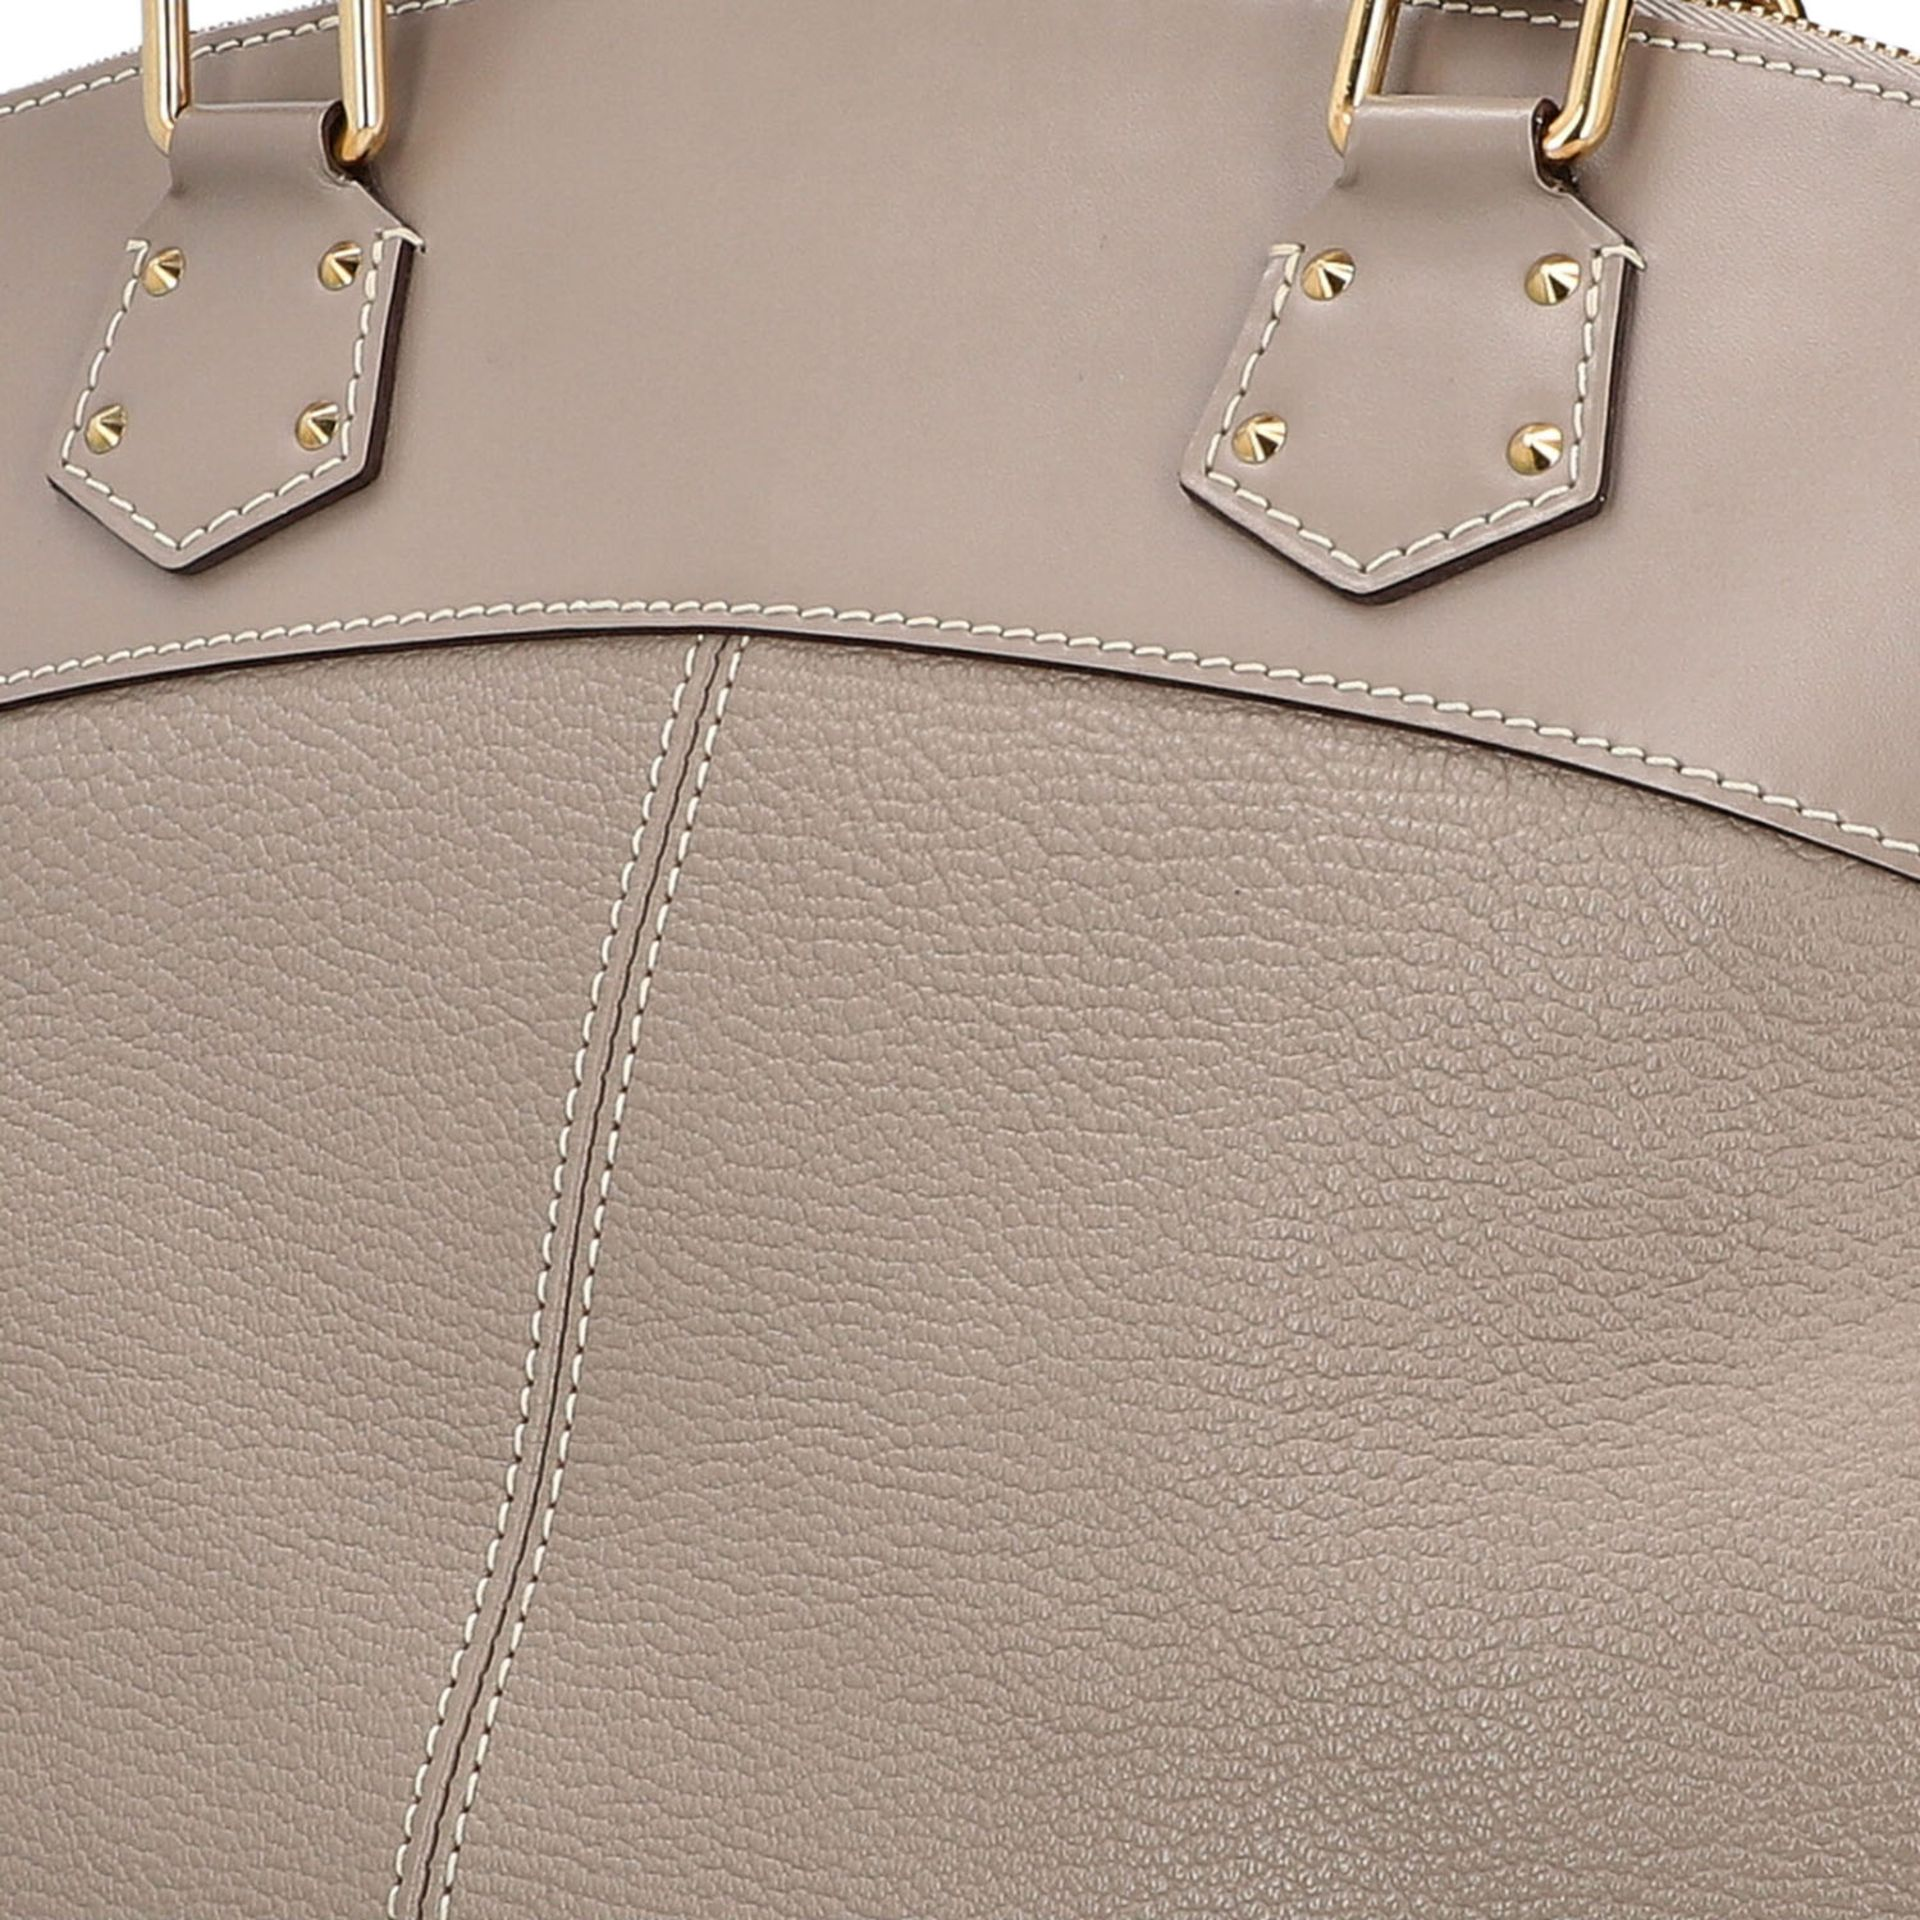 "LOUIS VUITTON Henkeltasche ""LOCK IT GM"", Koll.: 2007. Modell aus taupefarbenem Suhali- - Image 7 of 8"